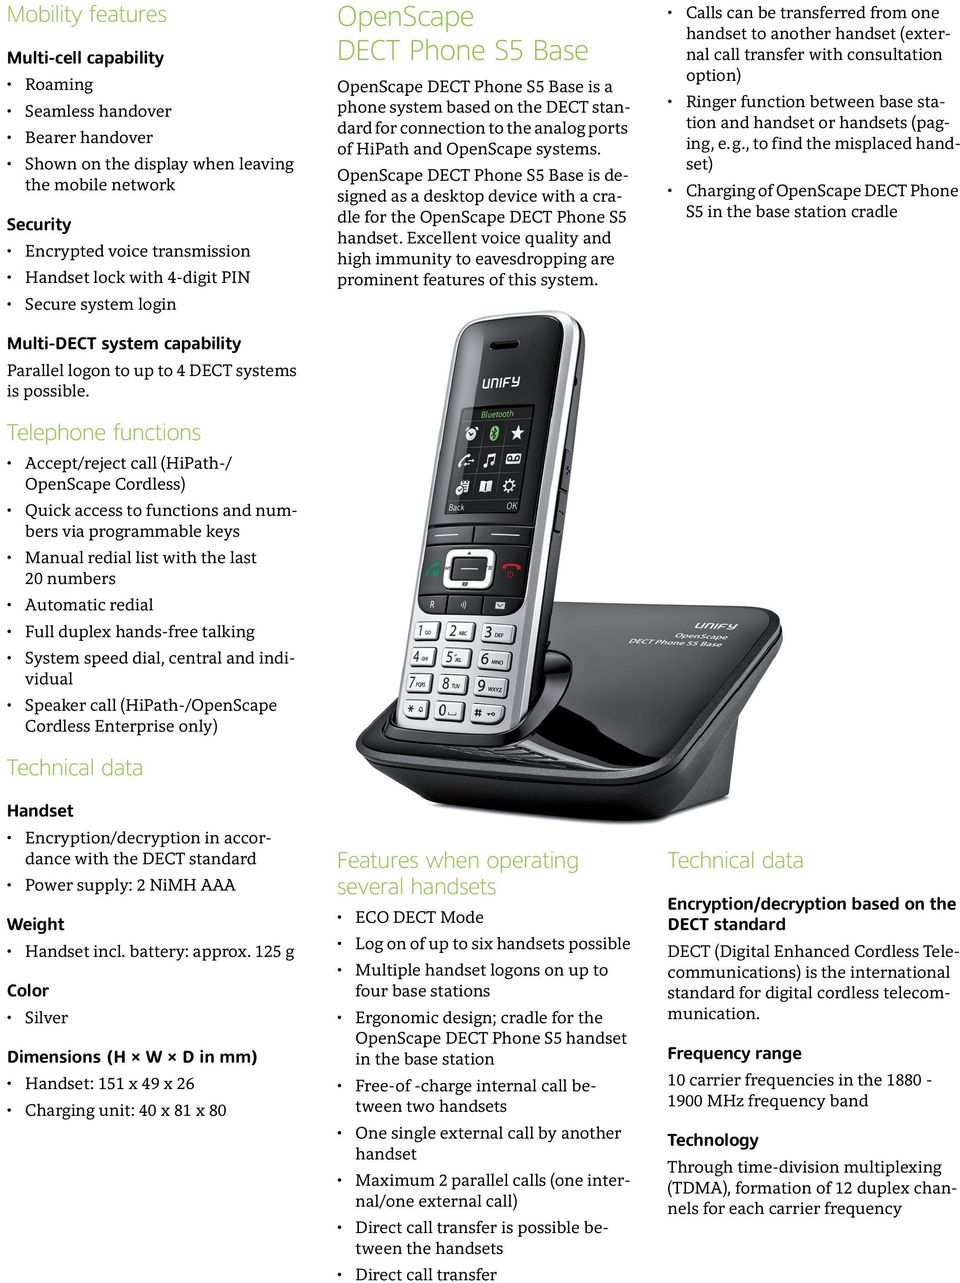 Telephone functions Accept/reject call (HiPath-/ OpenScape Cordless) Quick access to functions and numbers via programmable keys Manual redial list with the last 20 numbers Automatic redial Full